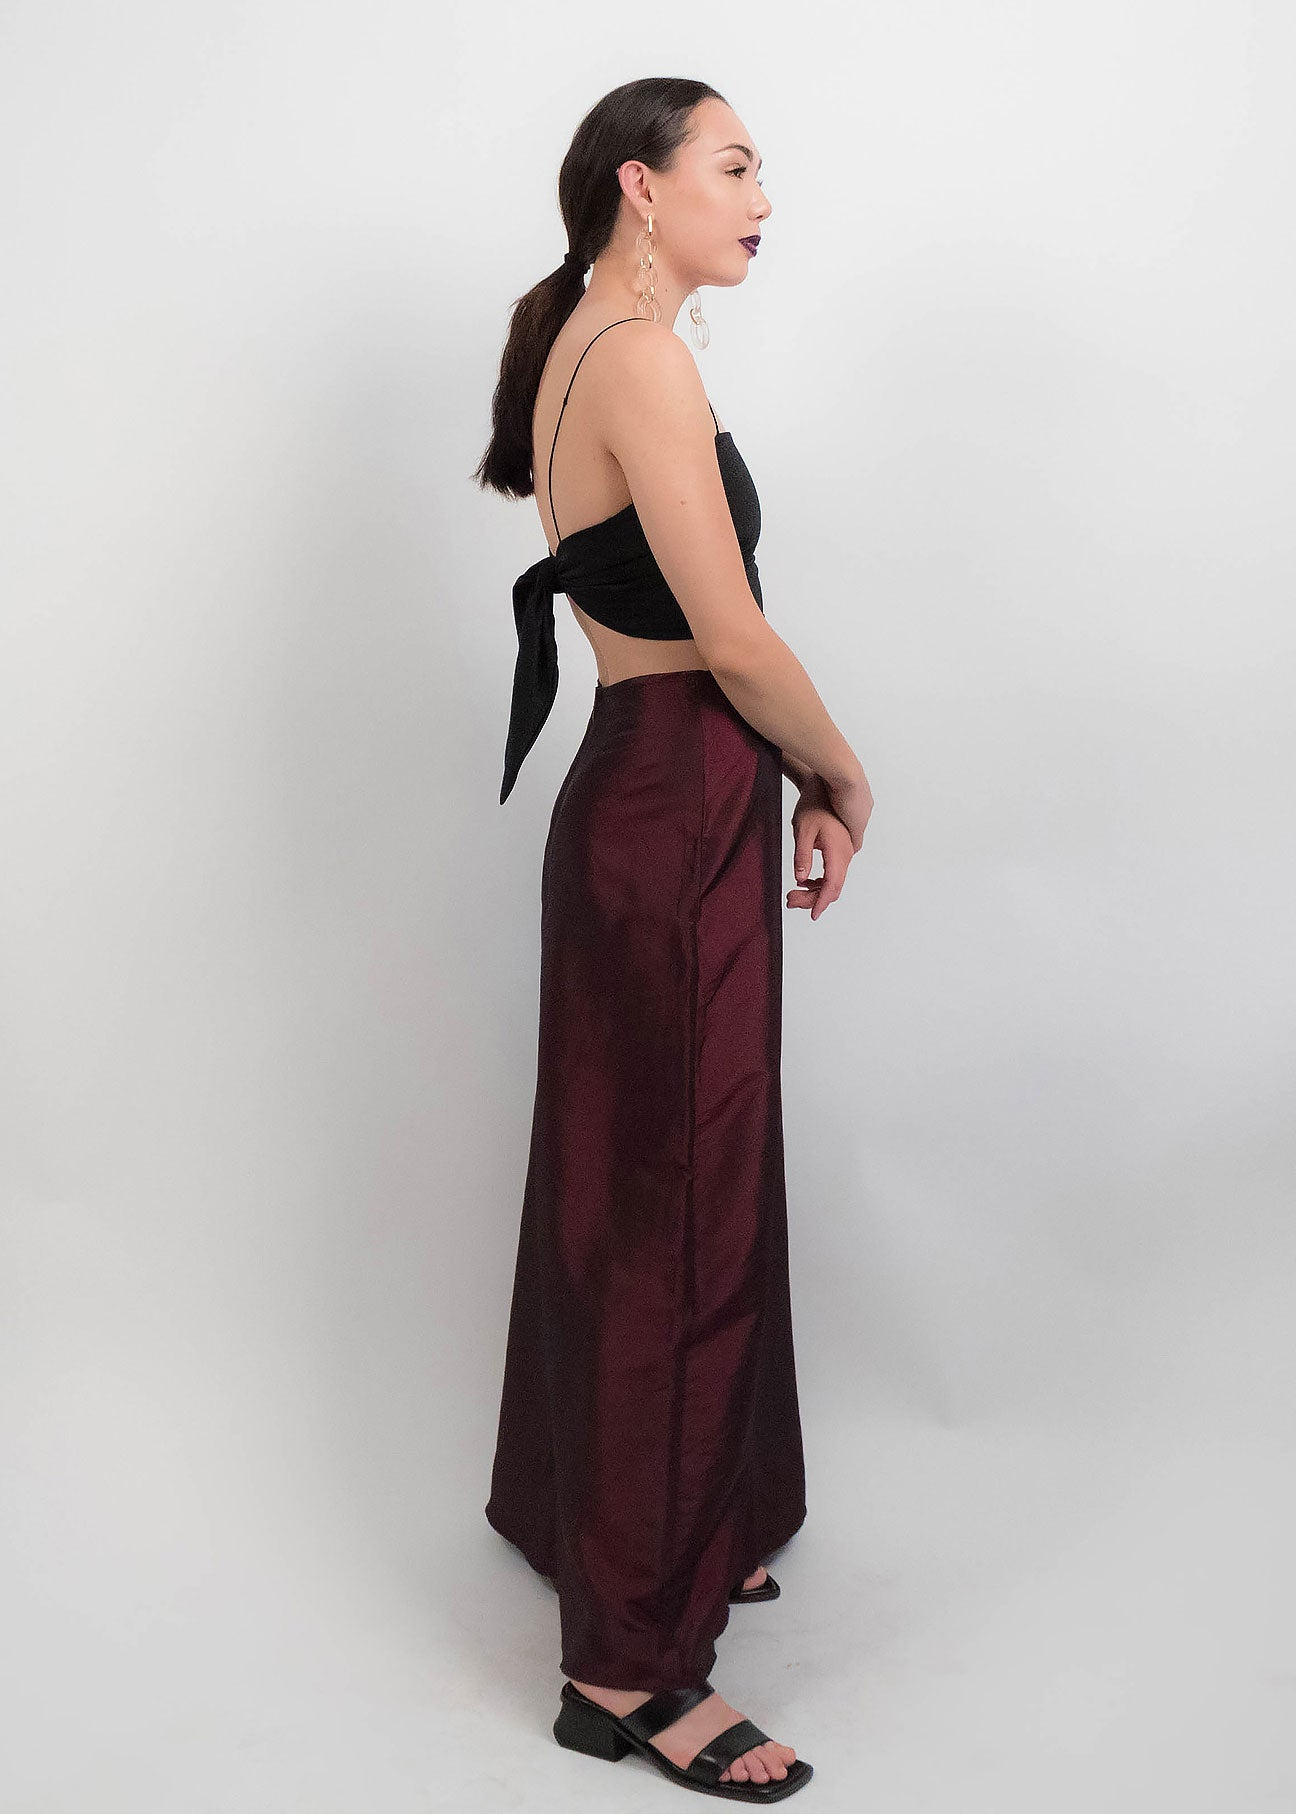 90s Iridescent Maxi Skirt